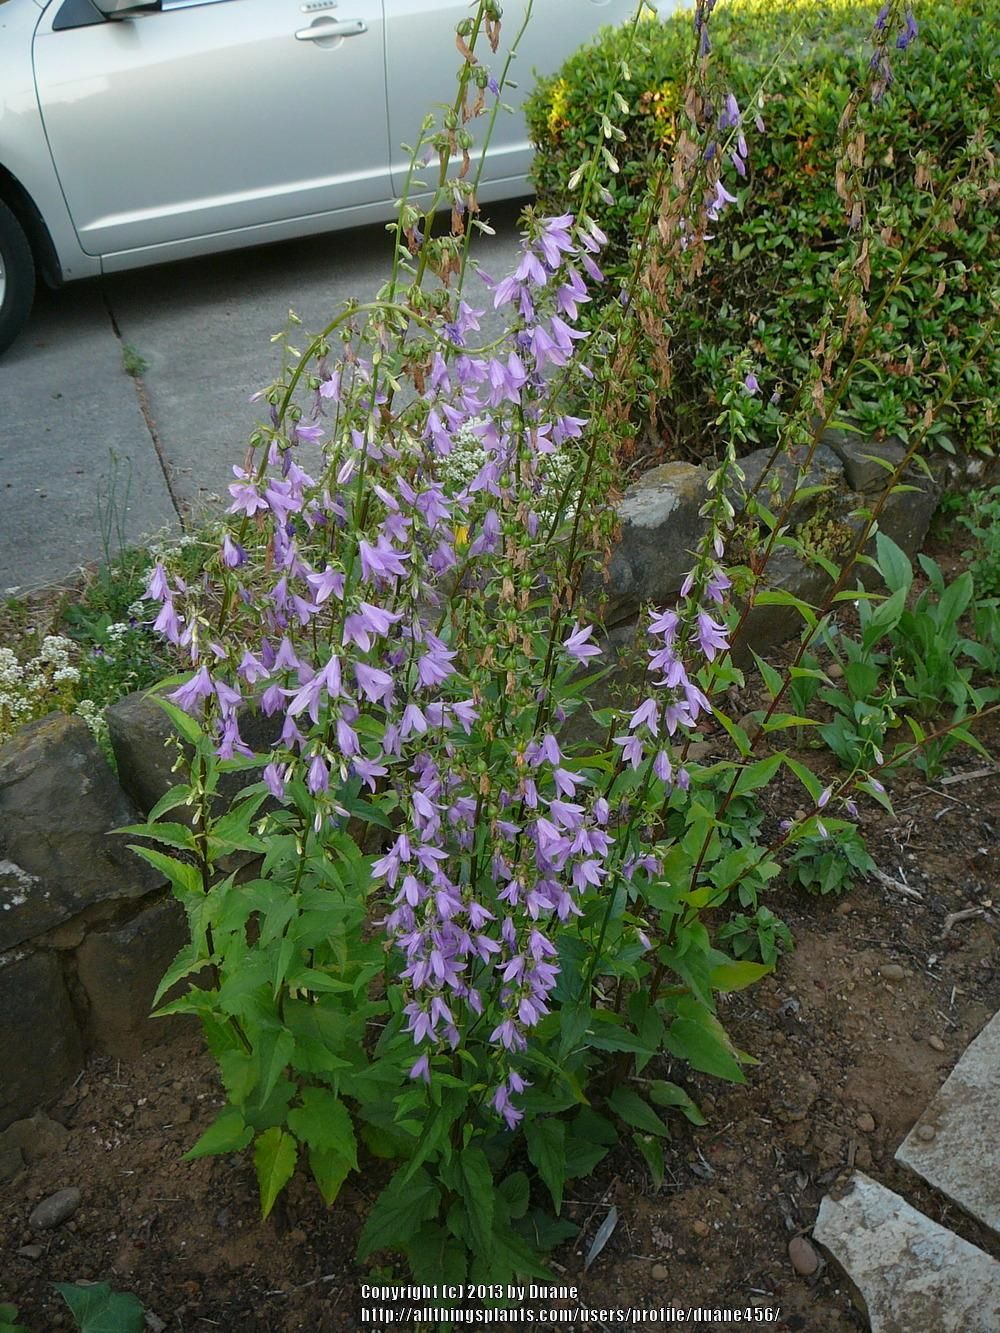 Entire Plant Photo Of Chimney Bellflower Campanula Pyramidalis Uploaded To Garden Org By Duane456 Plants Bellflower Campanula